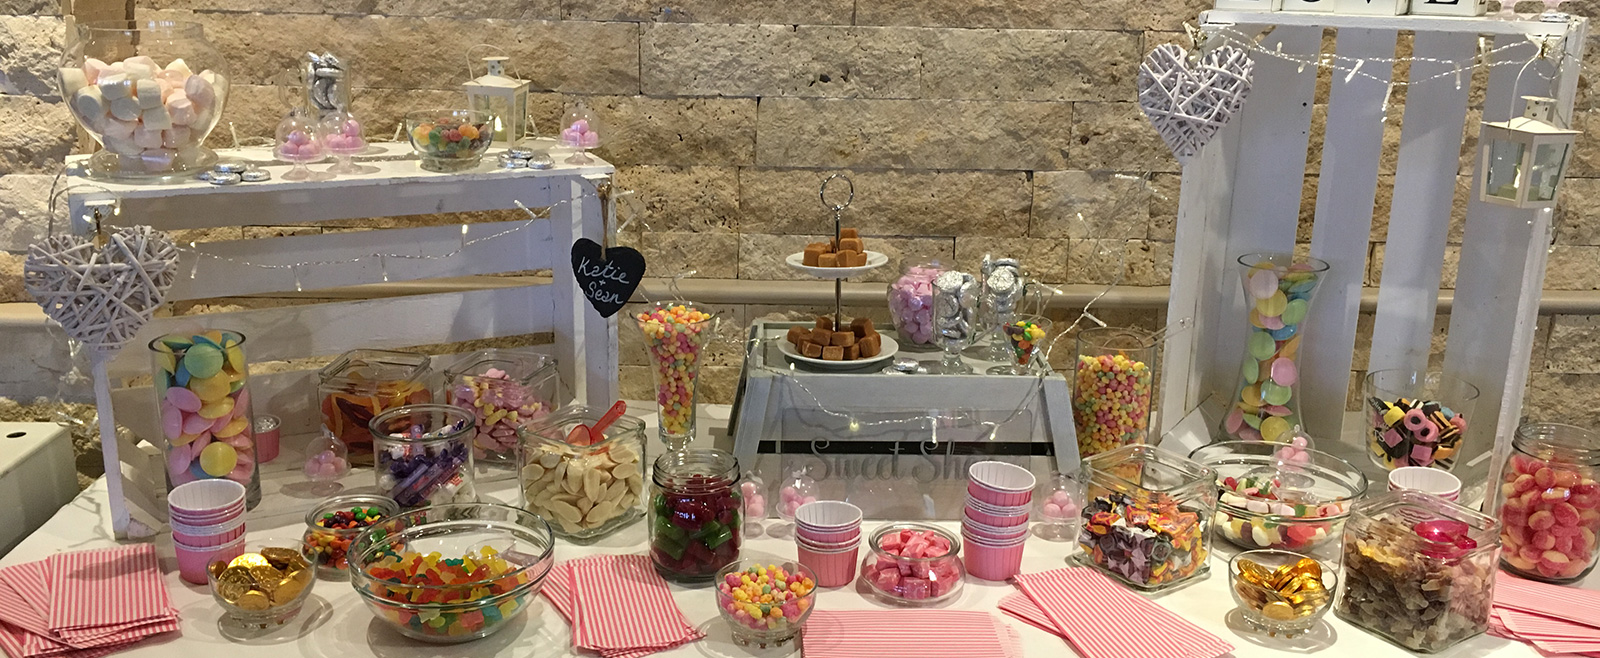 Wedding Venue Styling - Love Chocolate & Candy